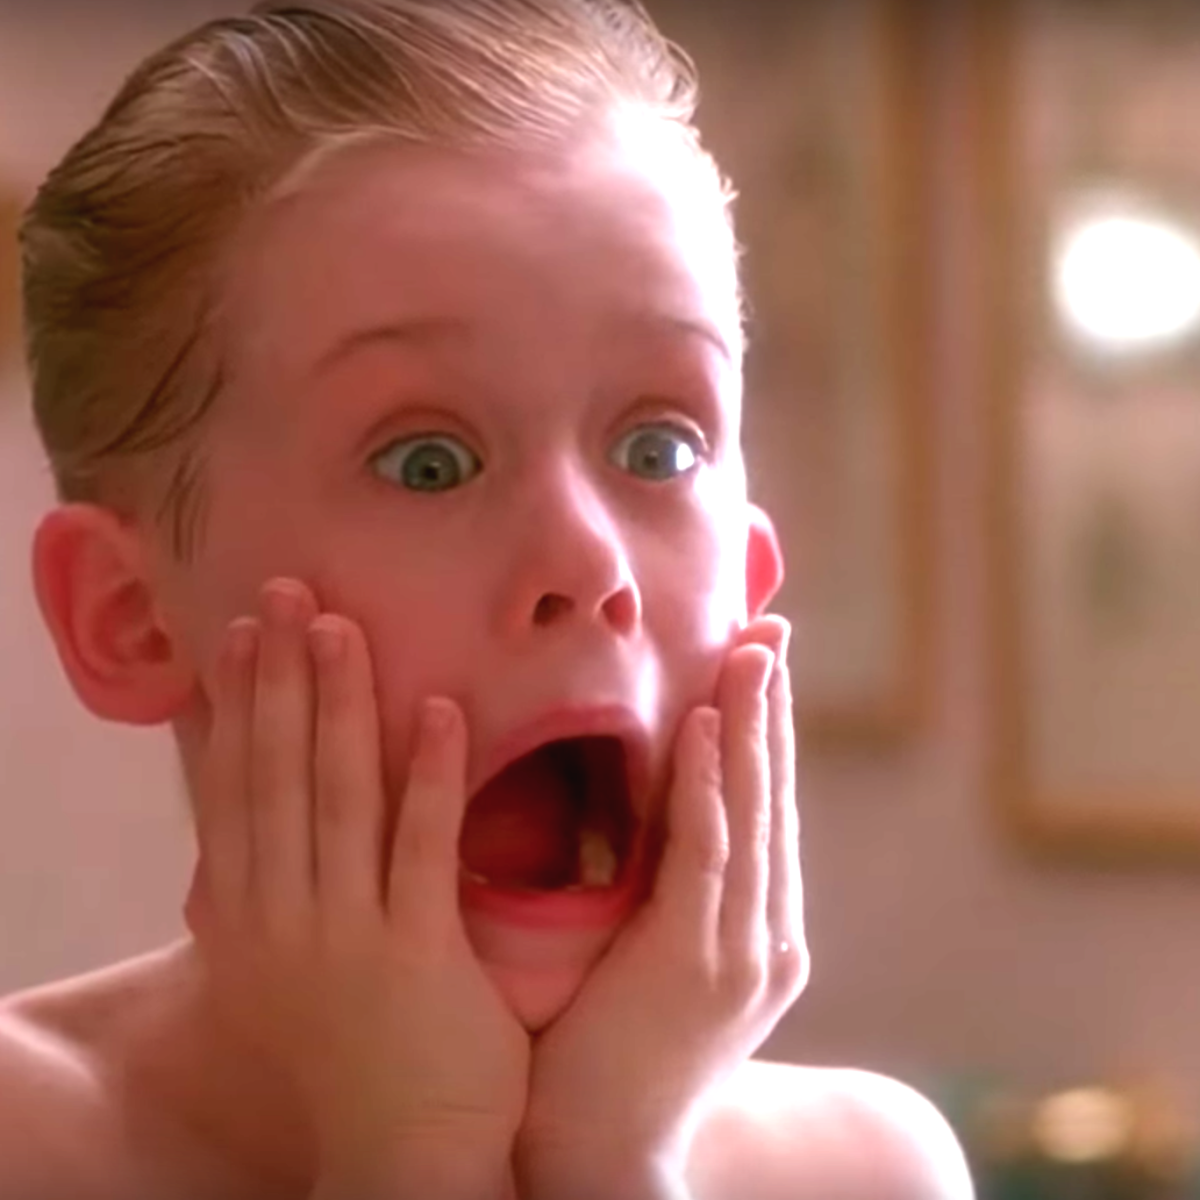 Christmas 2020: From 'Home Alone' to 'The Polar Express' - 7 movies to binge-watch this festive weekend